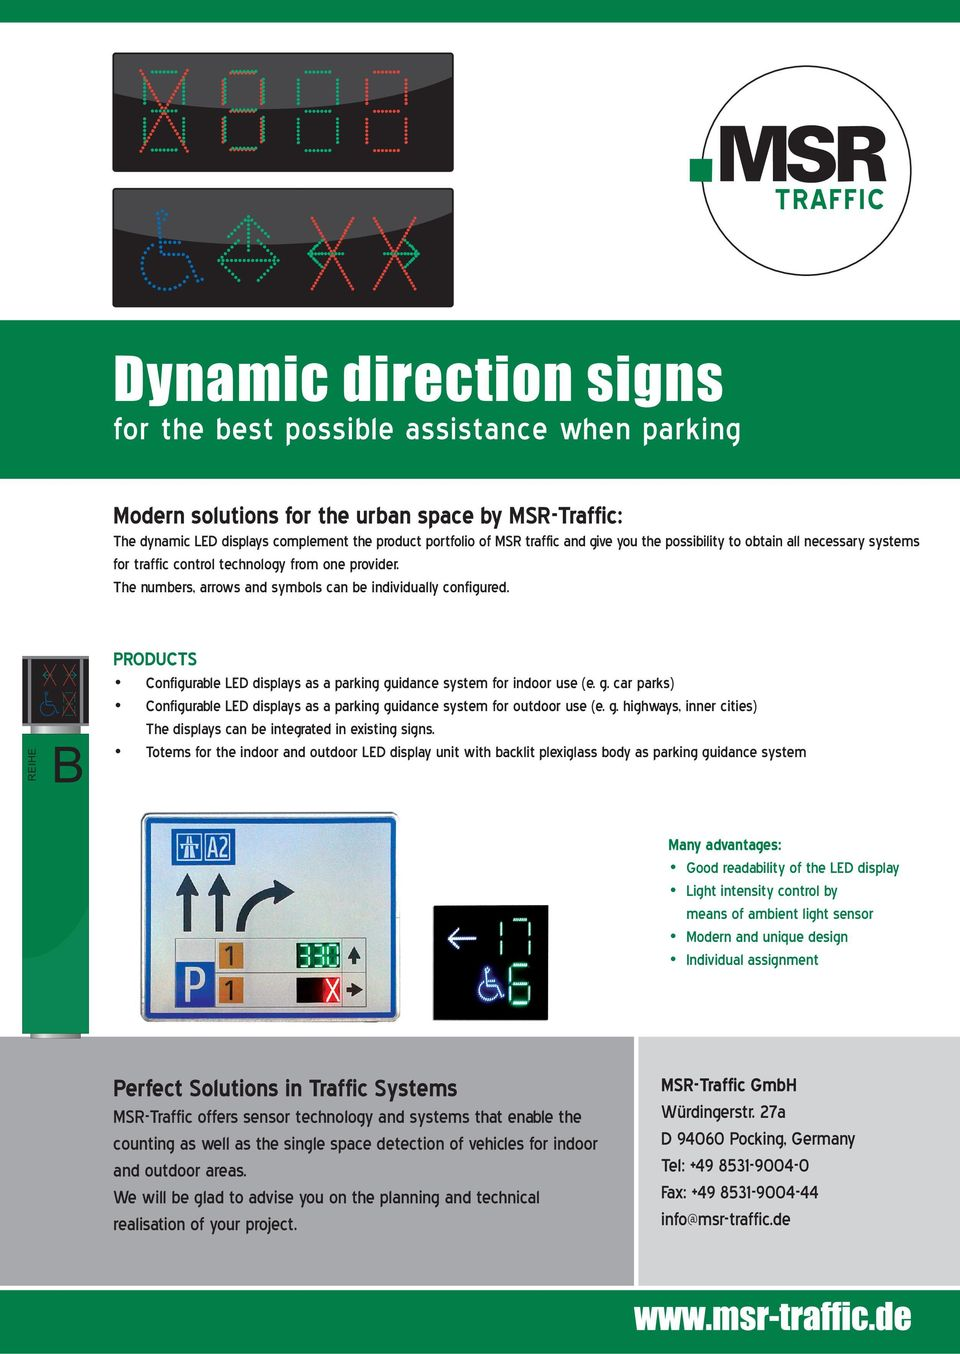 REIHE B PRODUCTS Configurable LED displays as a parking guidance system for indoor use (e. g. car parks) Configurable LED displays as a parking guidance system for outdoor use (e. g. highways, inner cities) The displays can be integrated in existing signs.